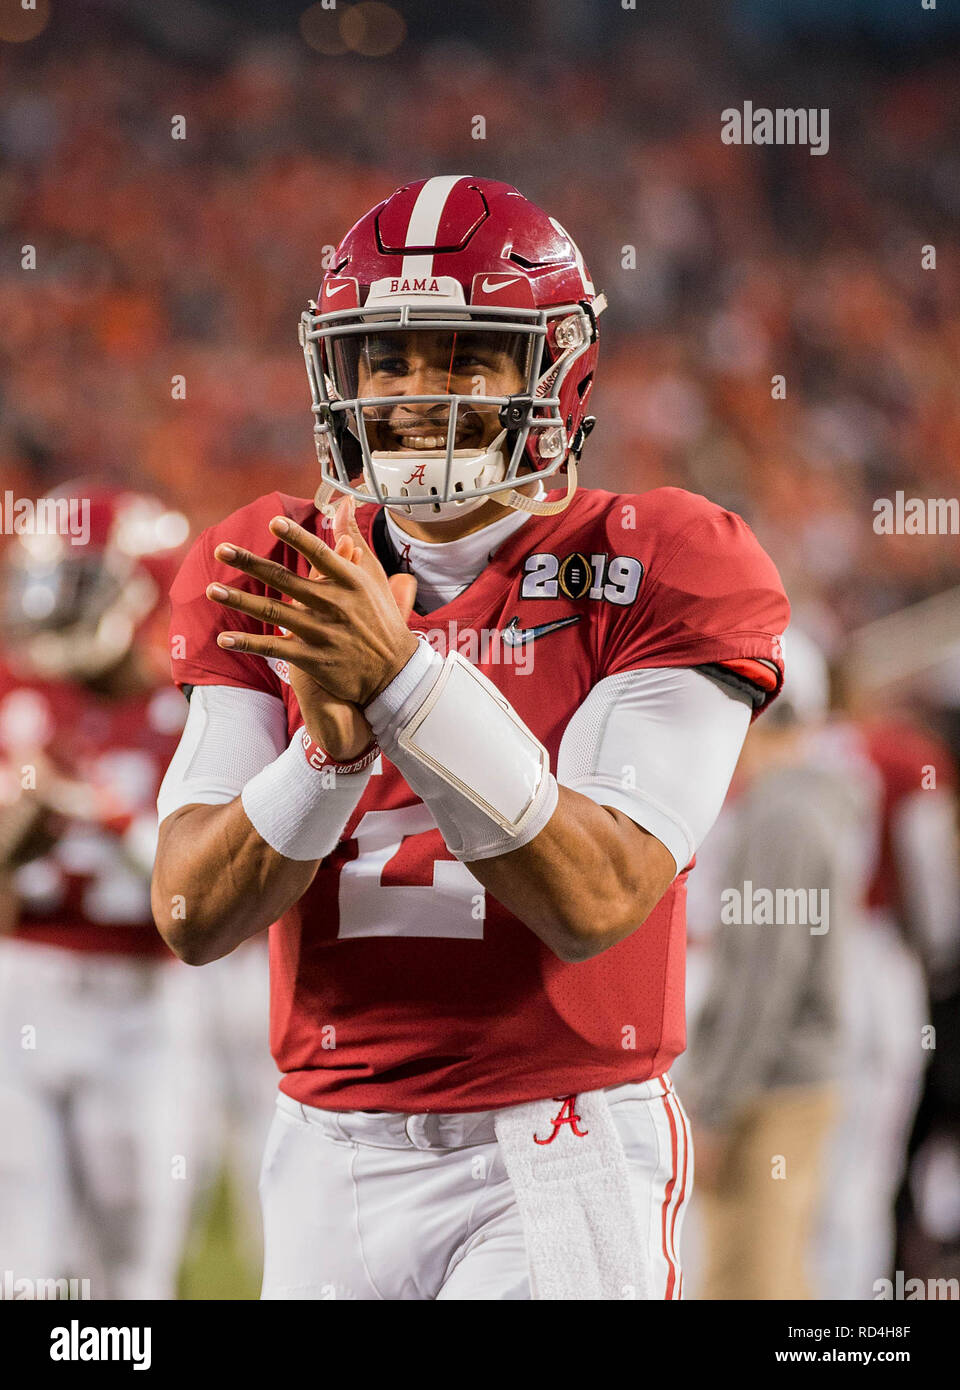 January 7, 201 Santa Clara, CA.Alabama quarterback (2) Jalen Hurts pumps himself up prior to the national championship game between the Alabama Crimson Tide and the Clemson Tigers at Levi Stadium on January 7, 2019. Clemson defeated Alabama 4416. (Absolute Complete Photographer & Company Credit: Juan Lainez/MarinMedia.org/Cal Sport Media (Network Television please contact your Sales Representative for Television usage.) (Television usage must over-burn ''MarinMedia'' on the top right corner of the screen to use on television) - Stock Image